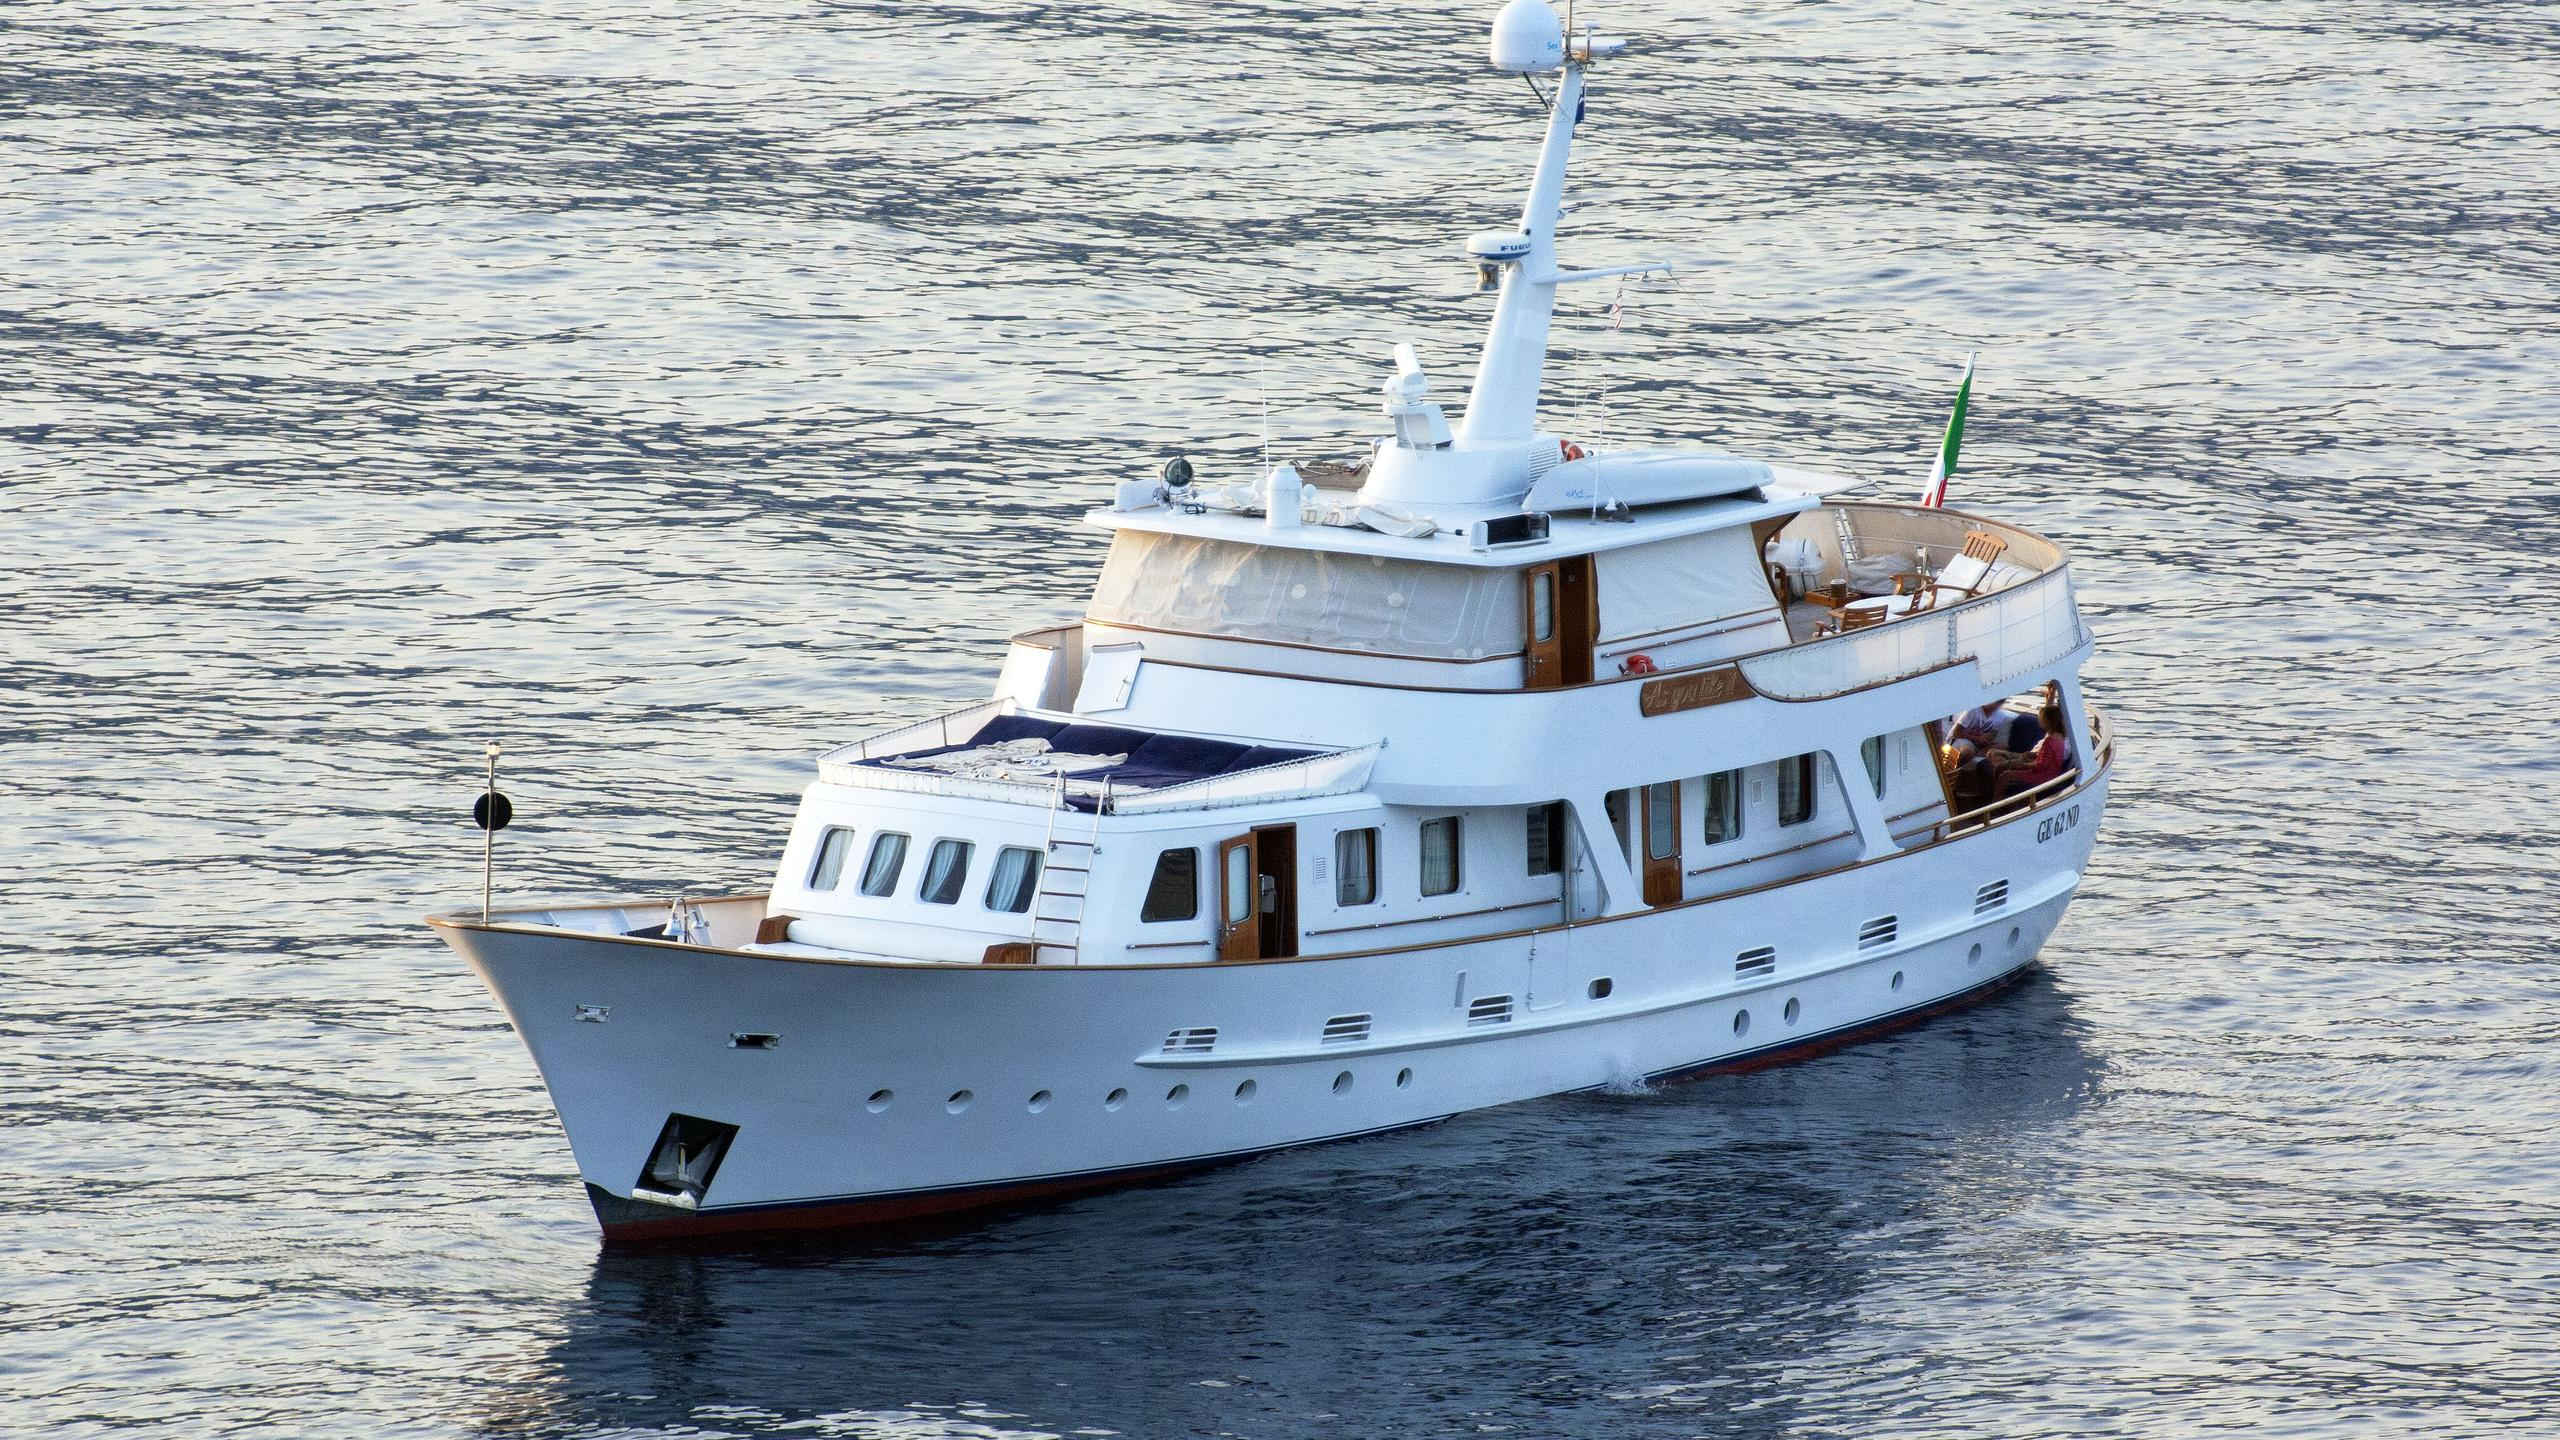 as-you-like-it-motor-yacht-Cammenga-Pacific-1975-26m-aerial